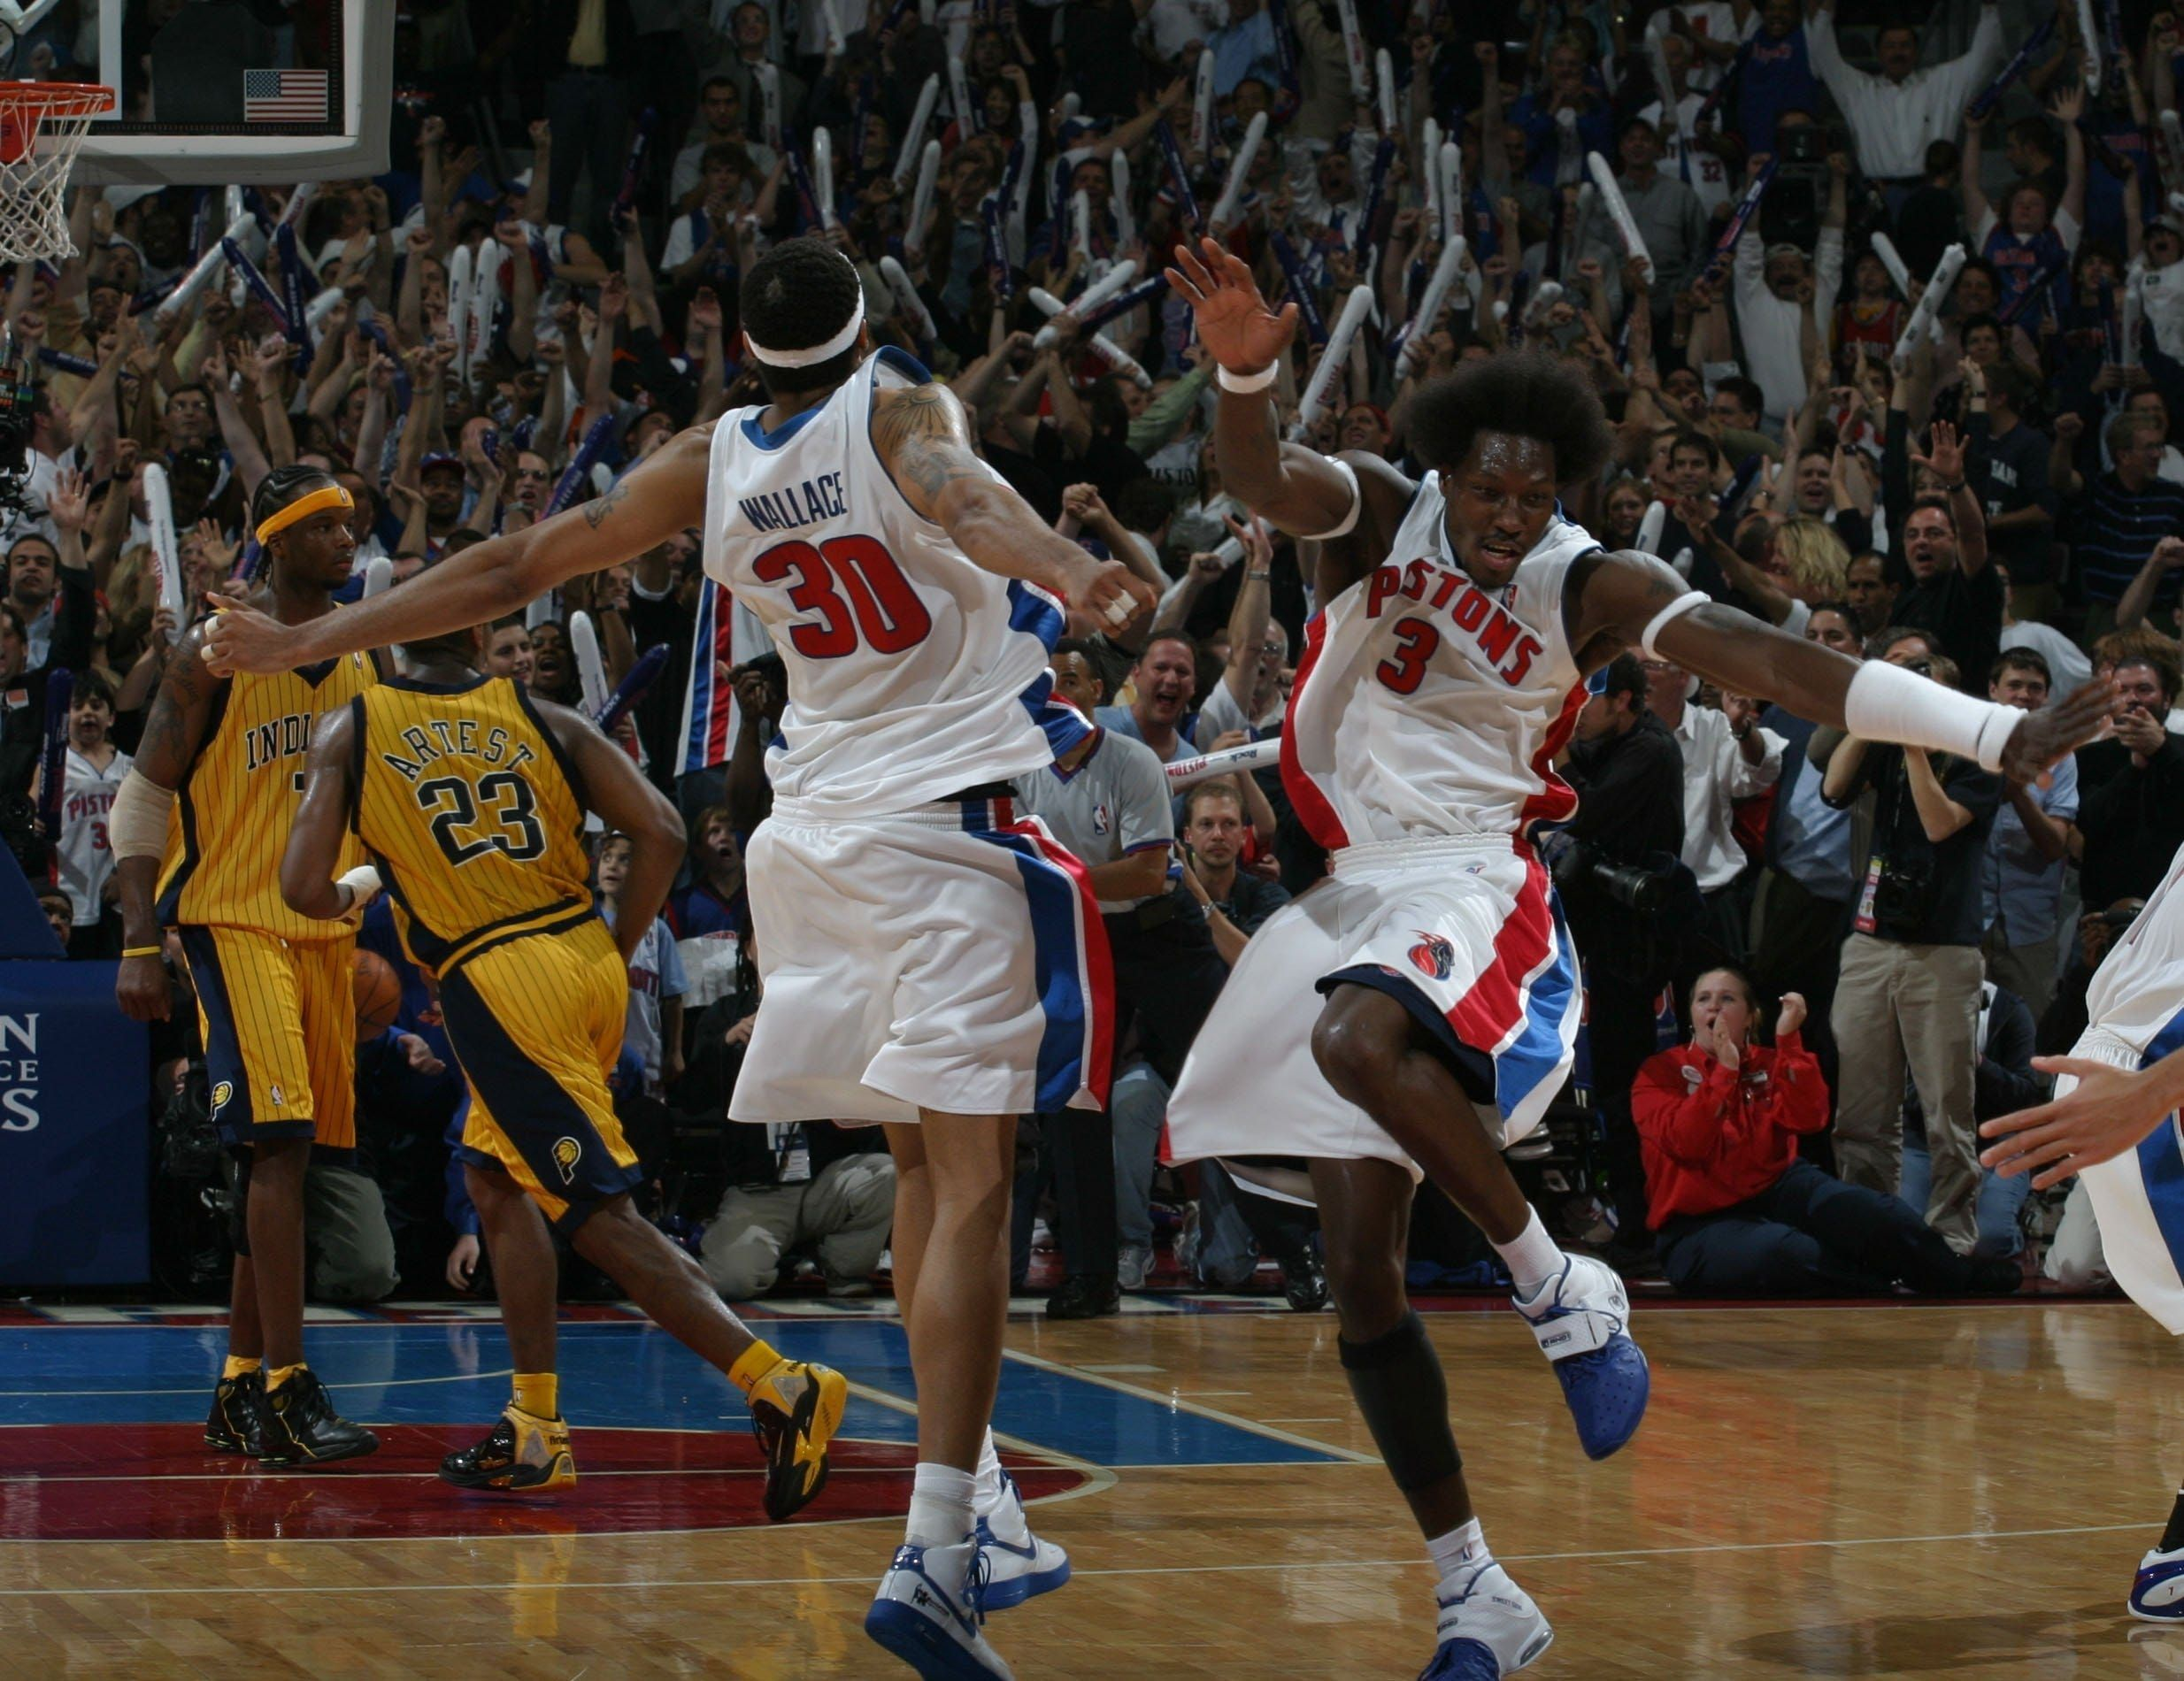 Detroit Pistons 2004 Championship Run One Photo From Each Playoff Game In 2020 Detroit Pistons Michigan Sports Detroit